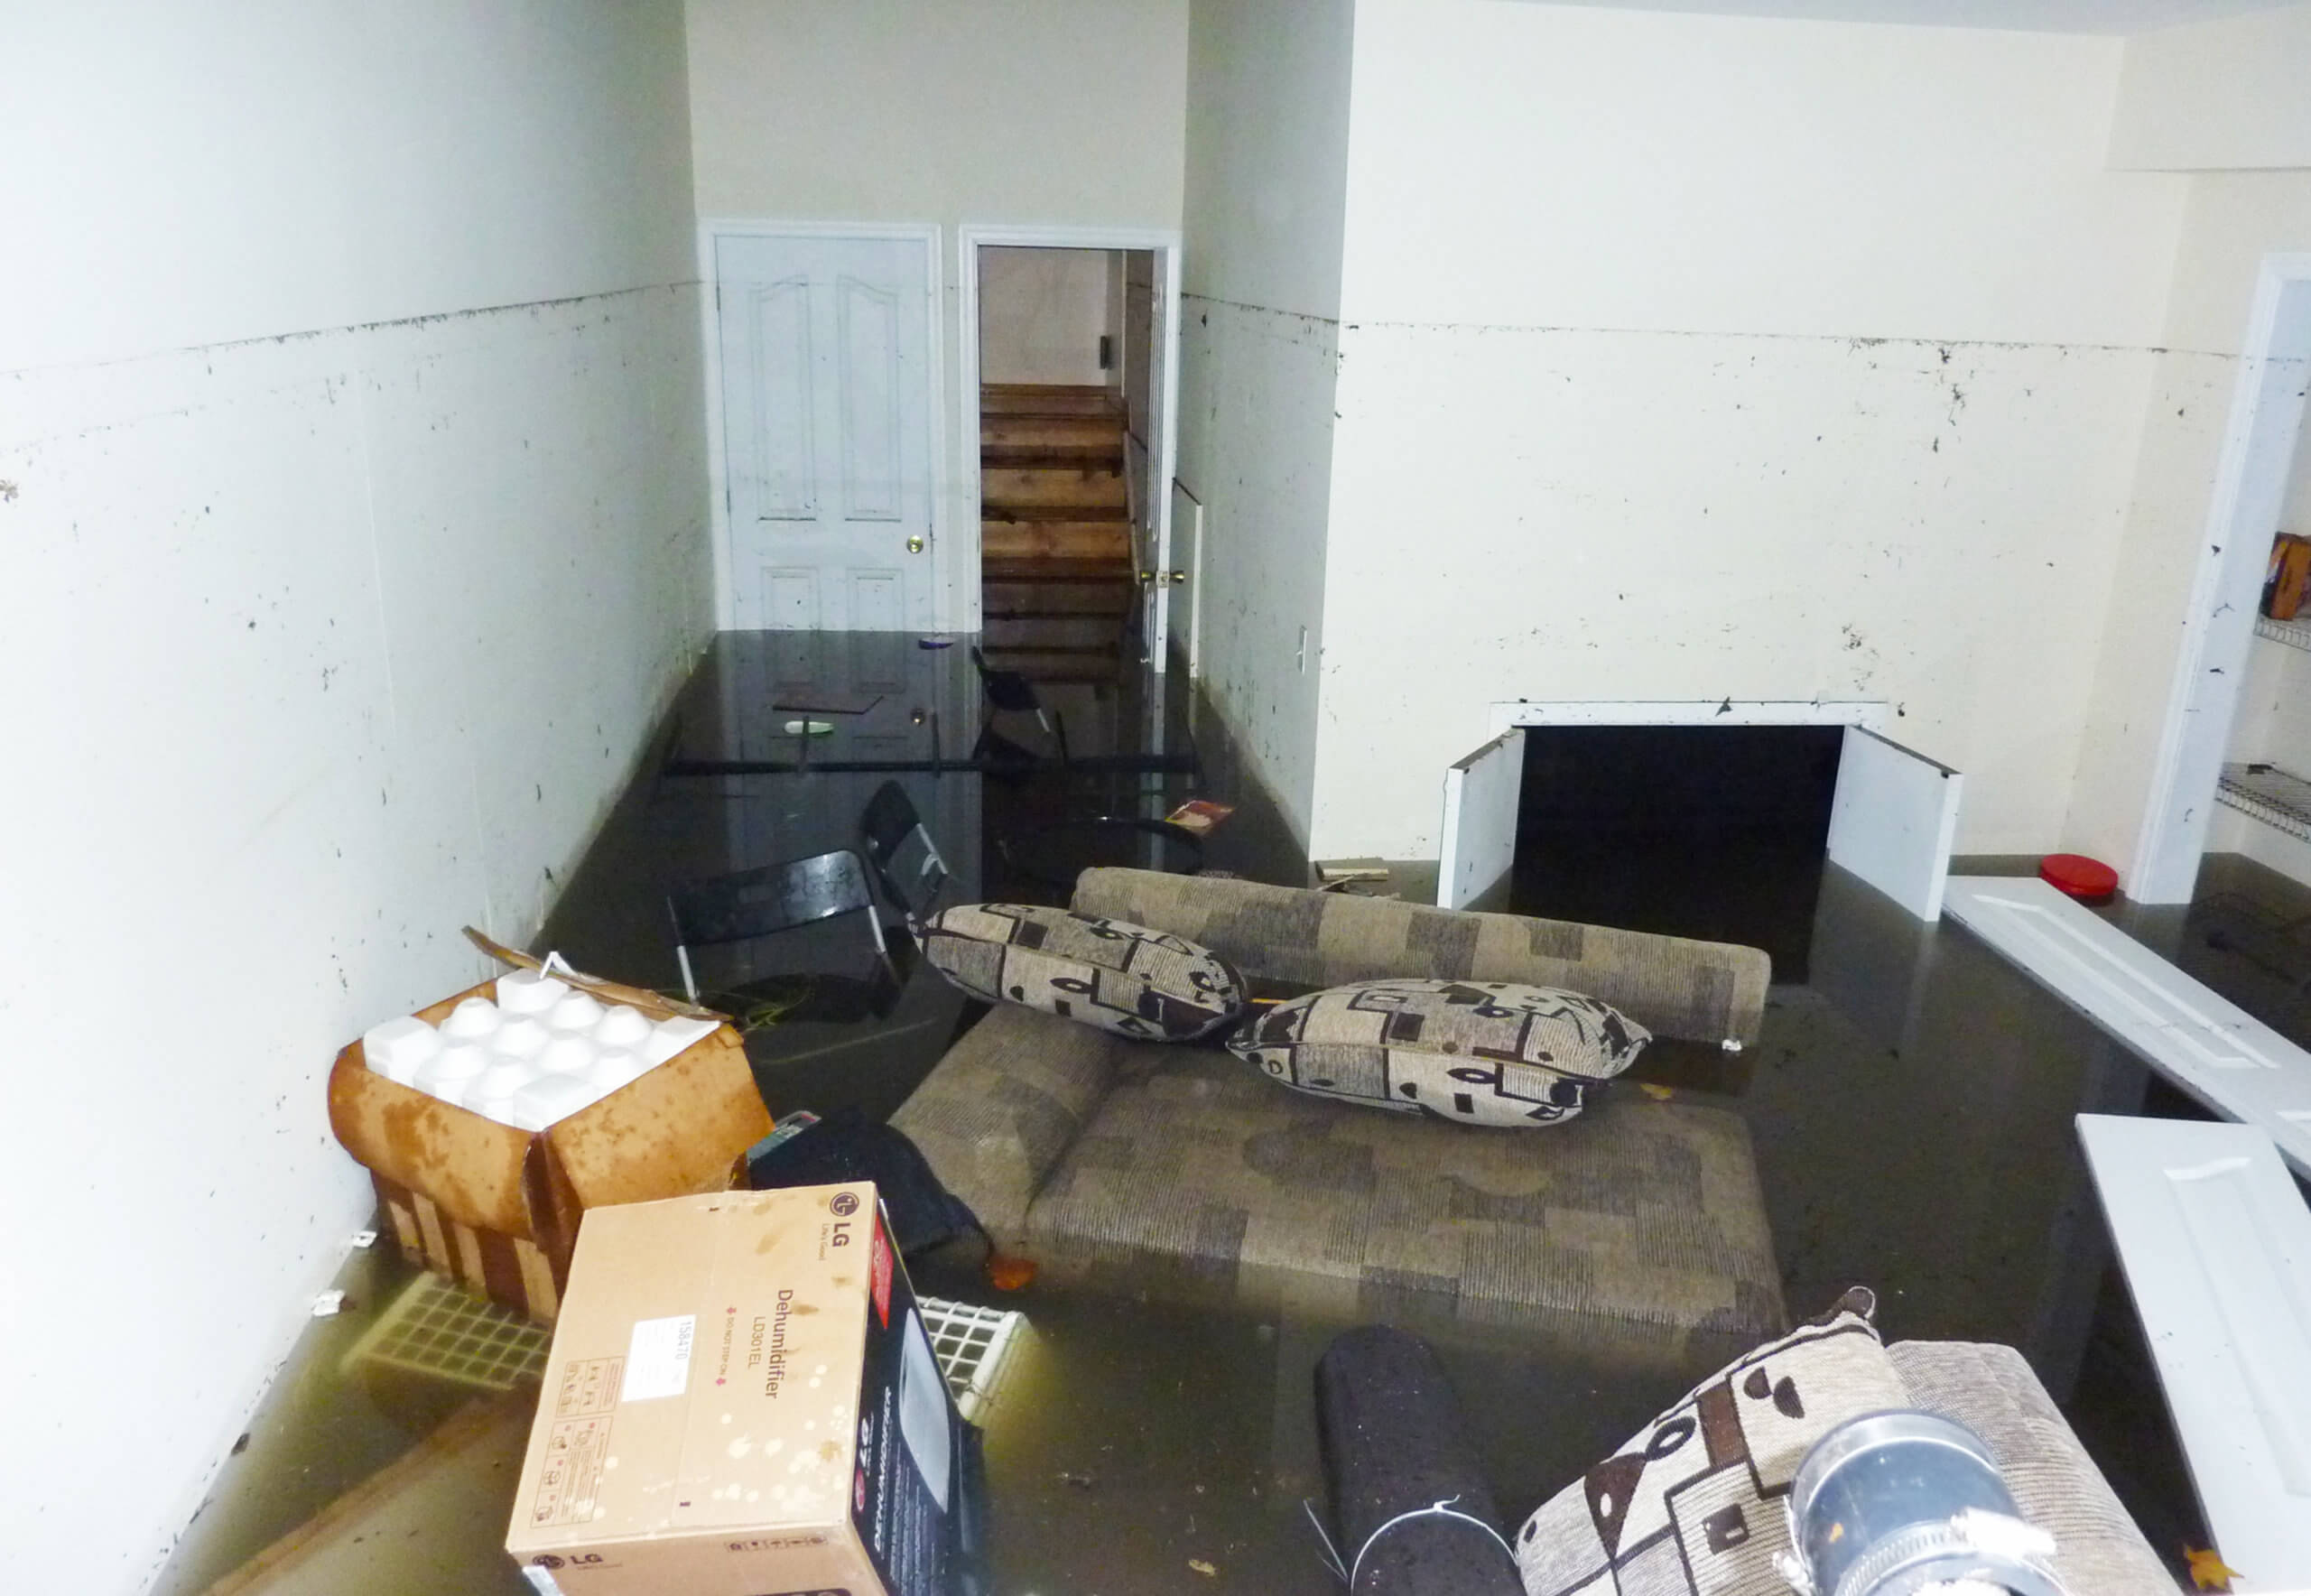 5 Things To Do Immediately When Your Basement Floods